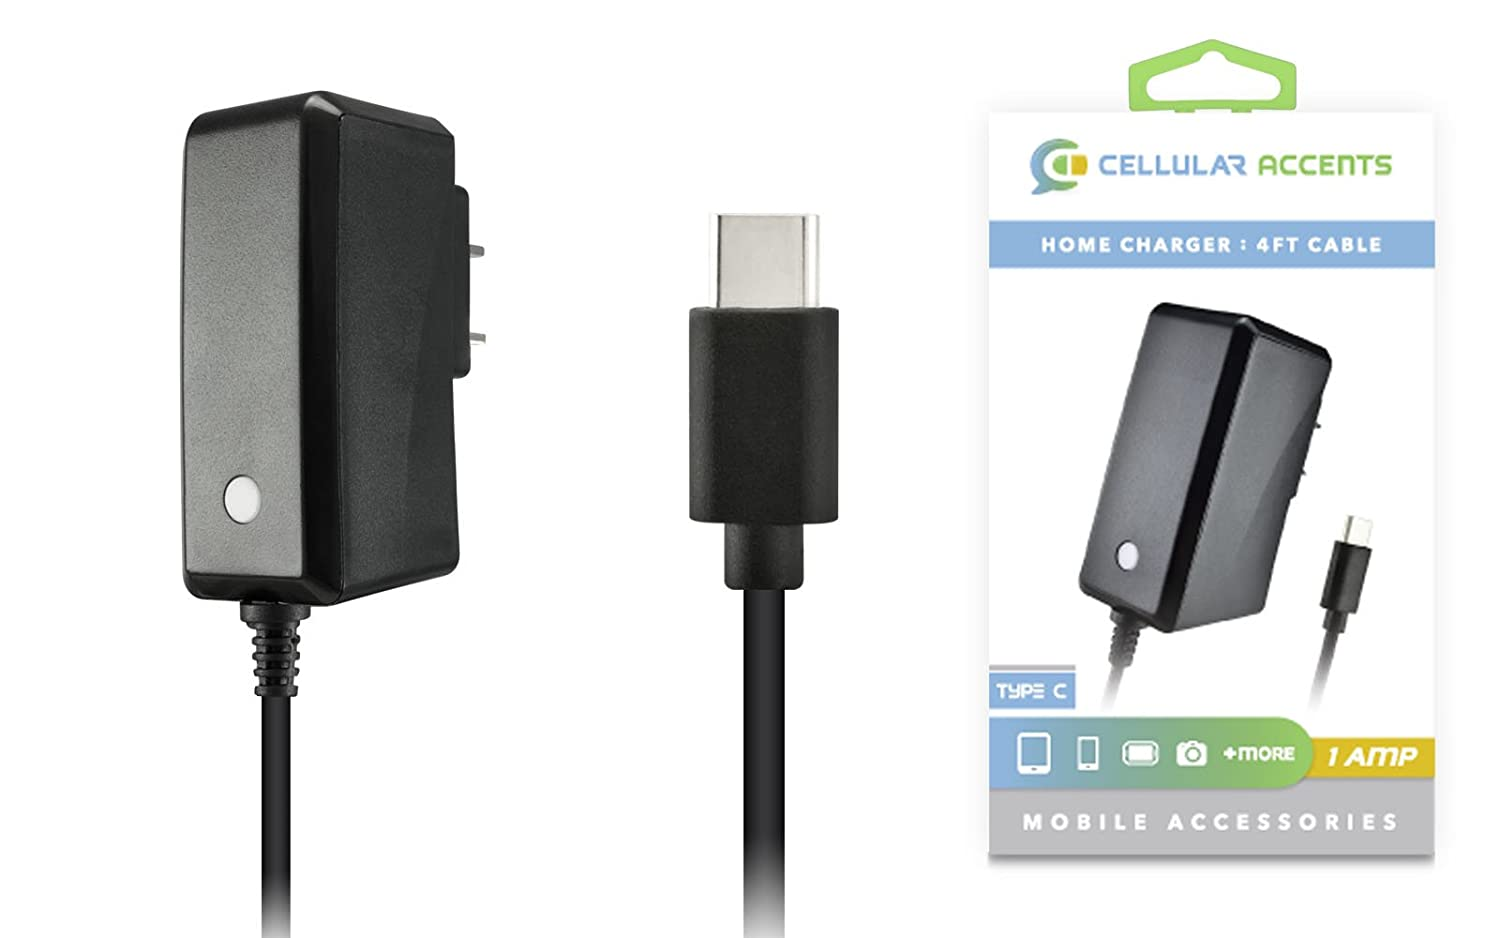 1 AMP 1000mAh USB 3.1 Type C Reversible Home Charger for Galaxy S8, S8+, Moto Z, Z Force, Z Play, Google Nexus 5X, 6P, Pixel, LG G5, G6, V20, ZTE Grand X Max 2, X 3, X 4, Zmax Pro, Z981 Plus more!